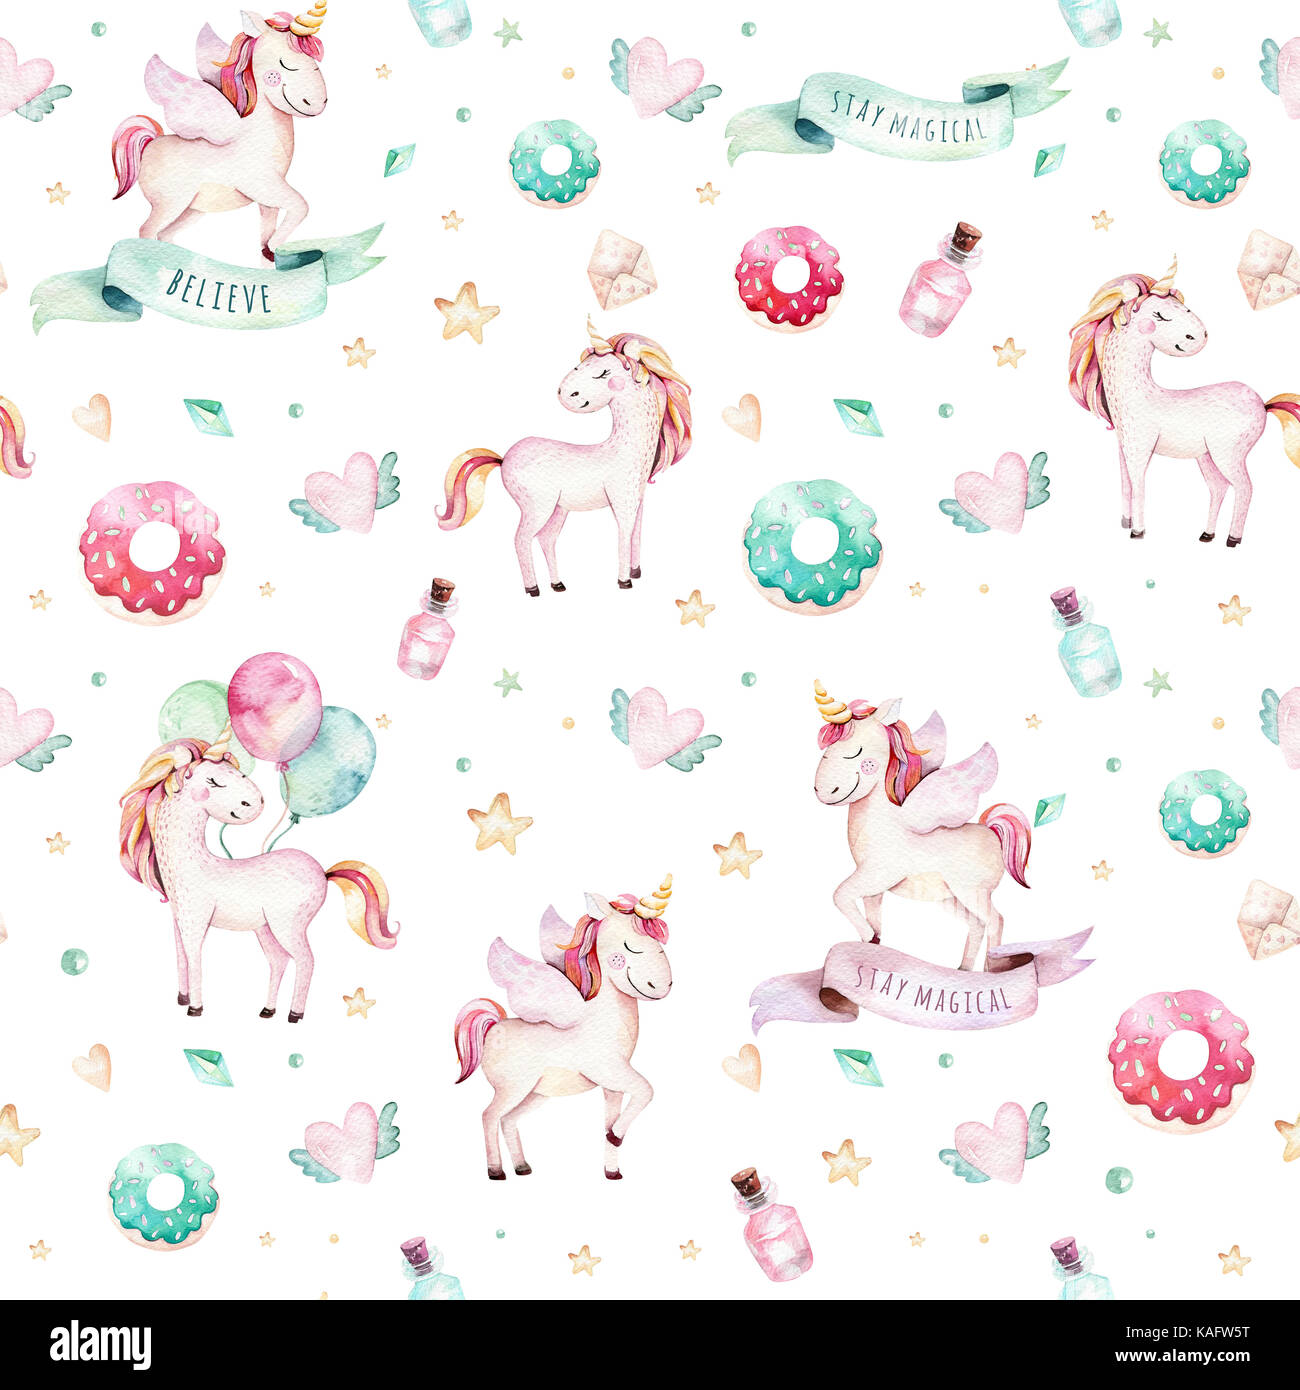 Isolated Cute Watercolor Unicorn Pattern Nursery Unicorns Aquarelle Princess Unicornscollection Trendy Pink Cartoon Horse